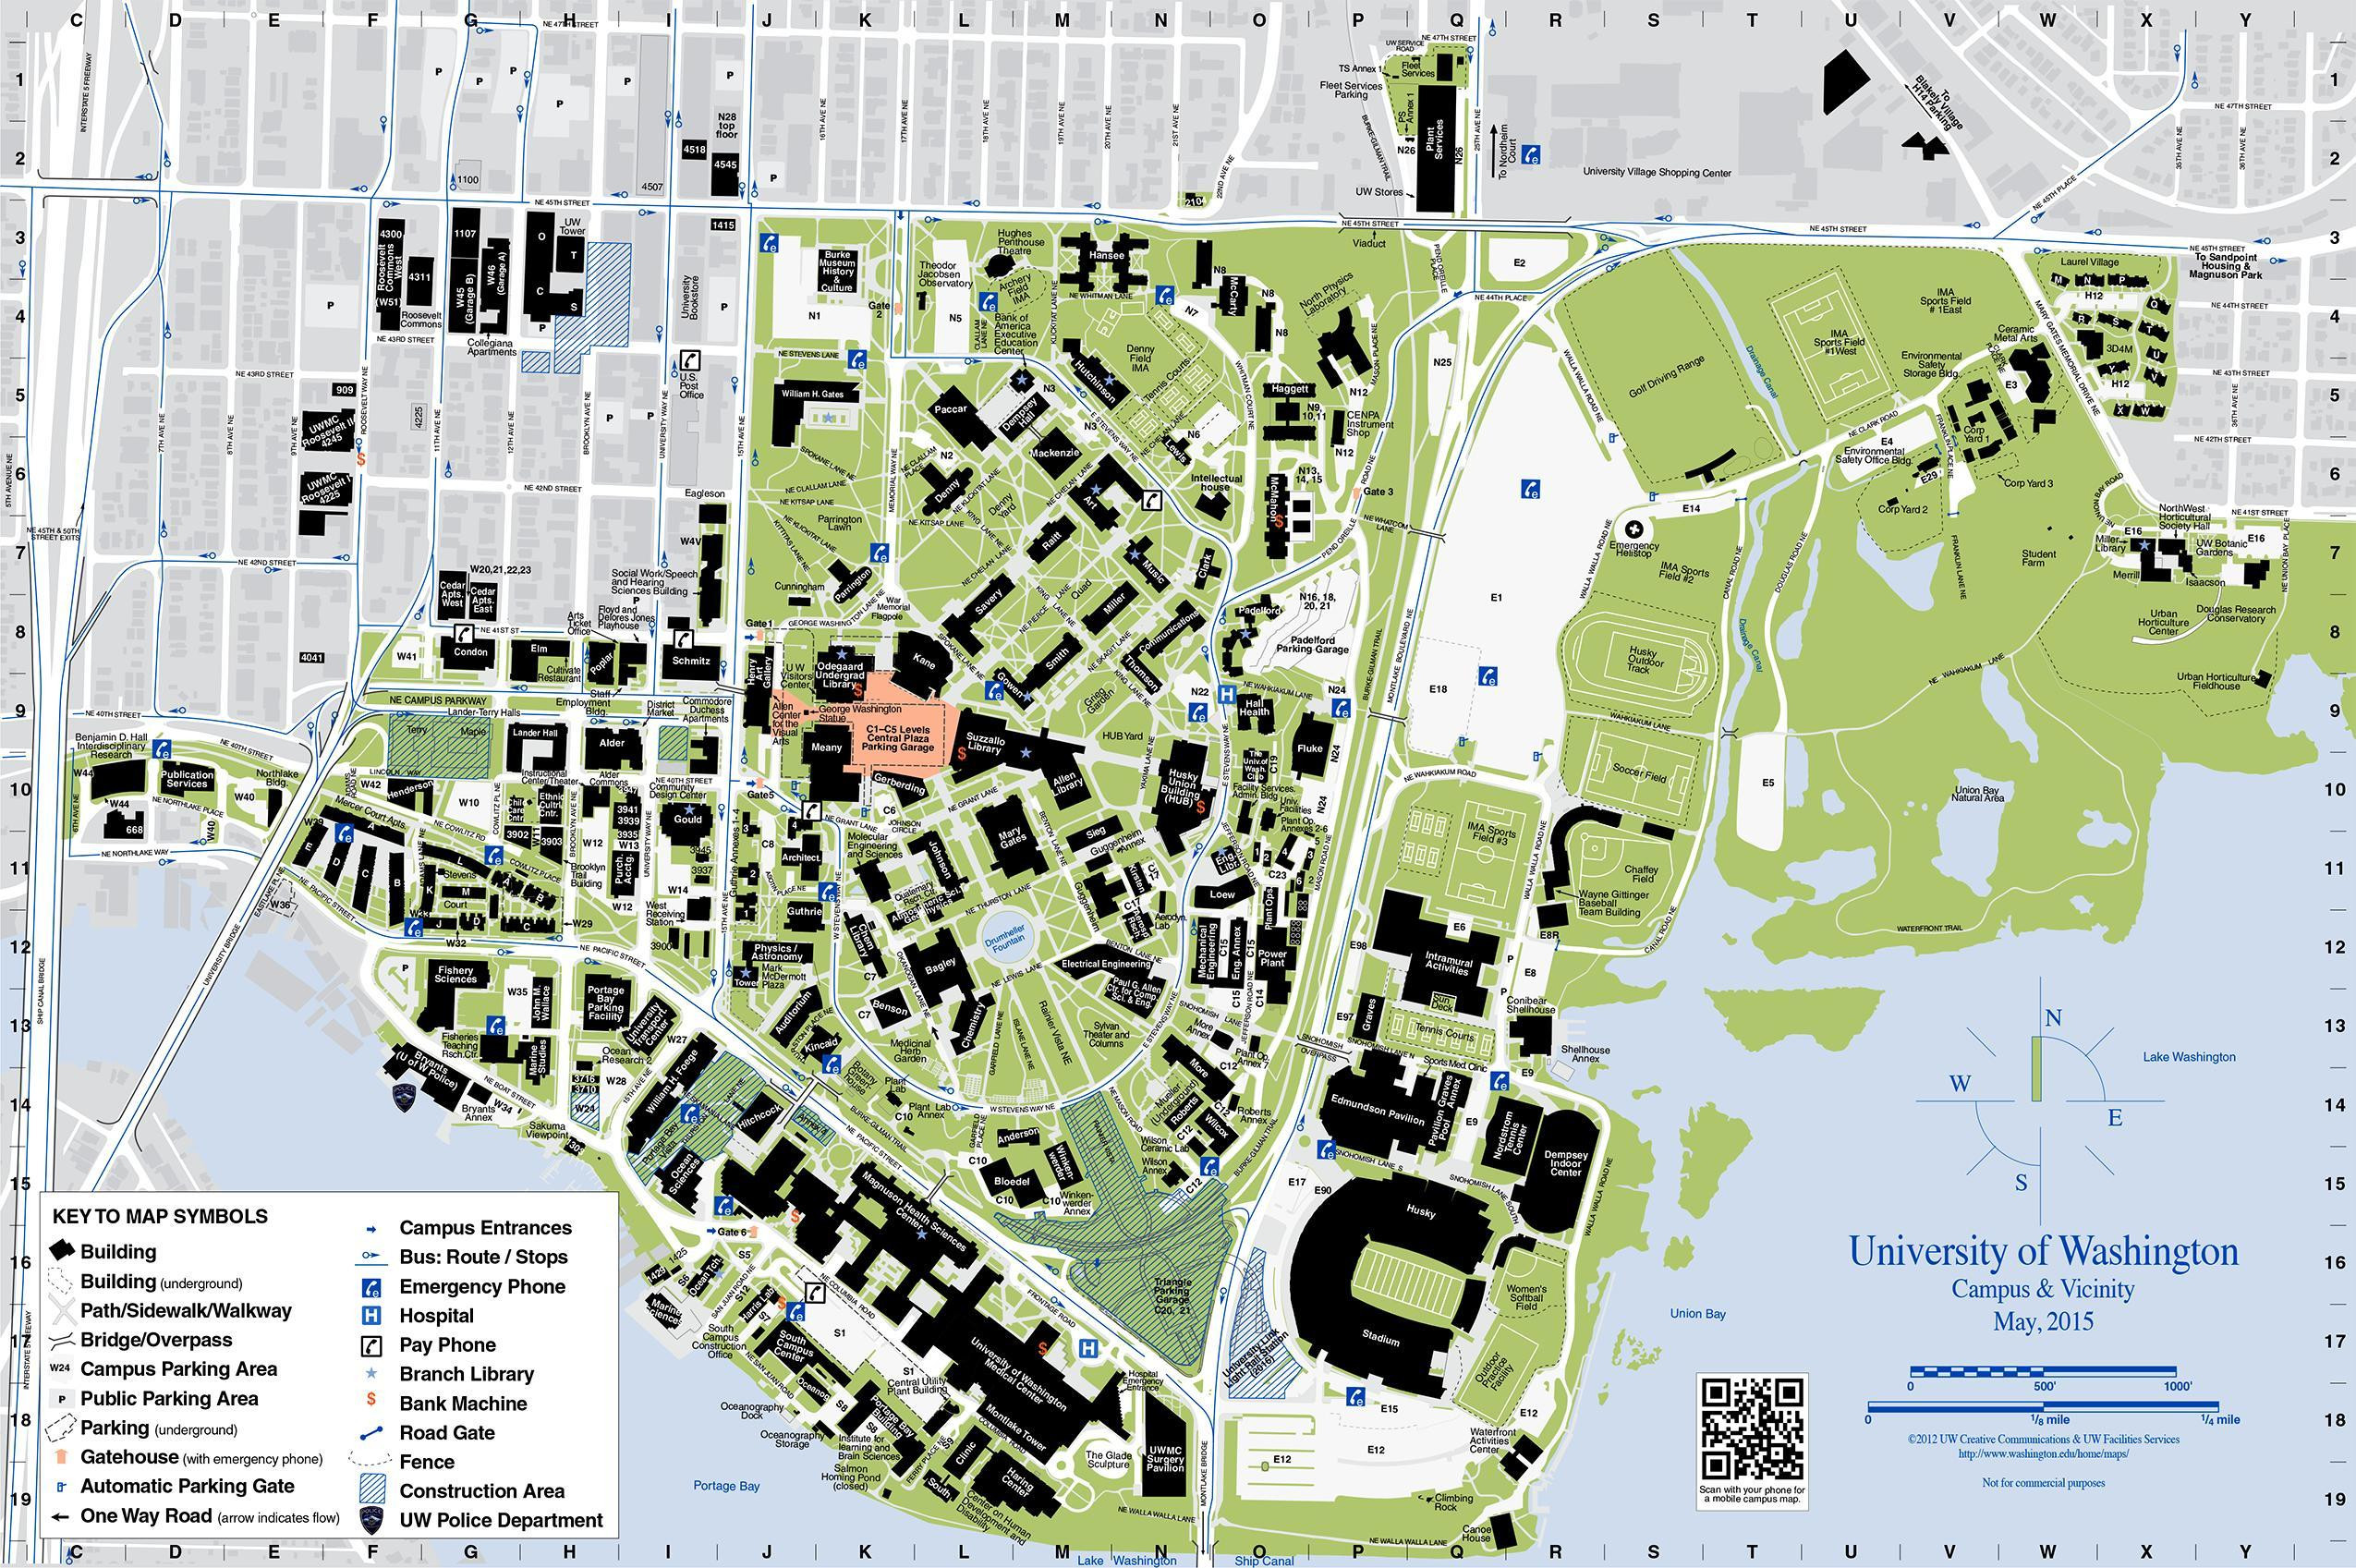 ucf campus map printable 4K